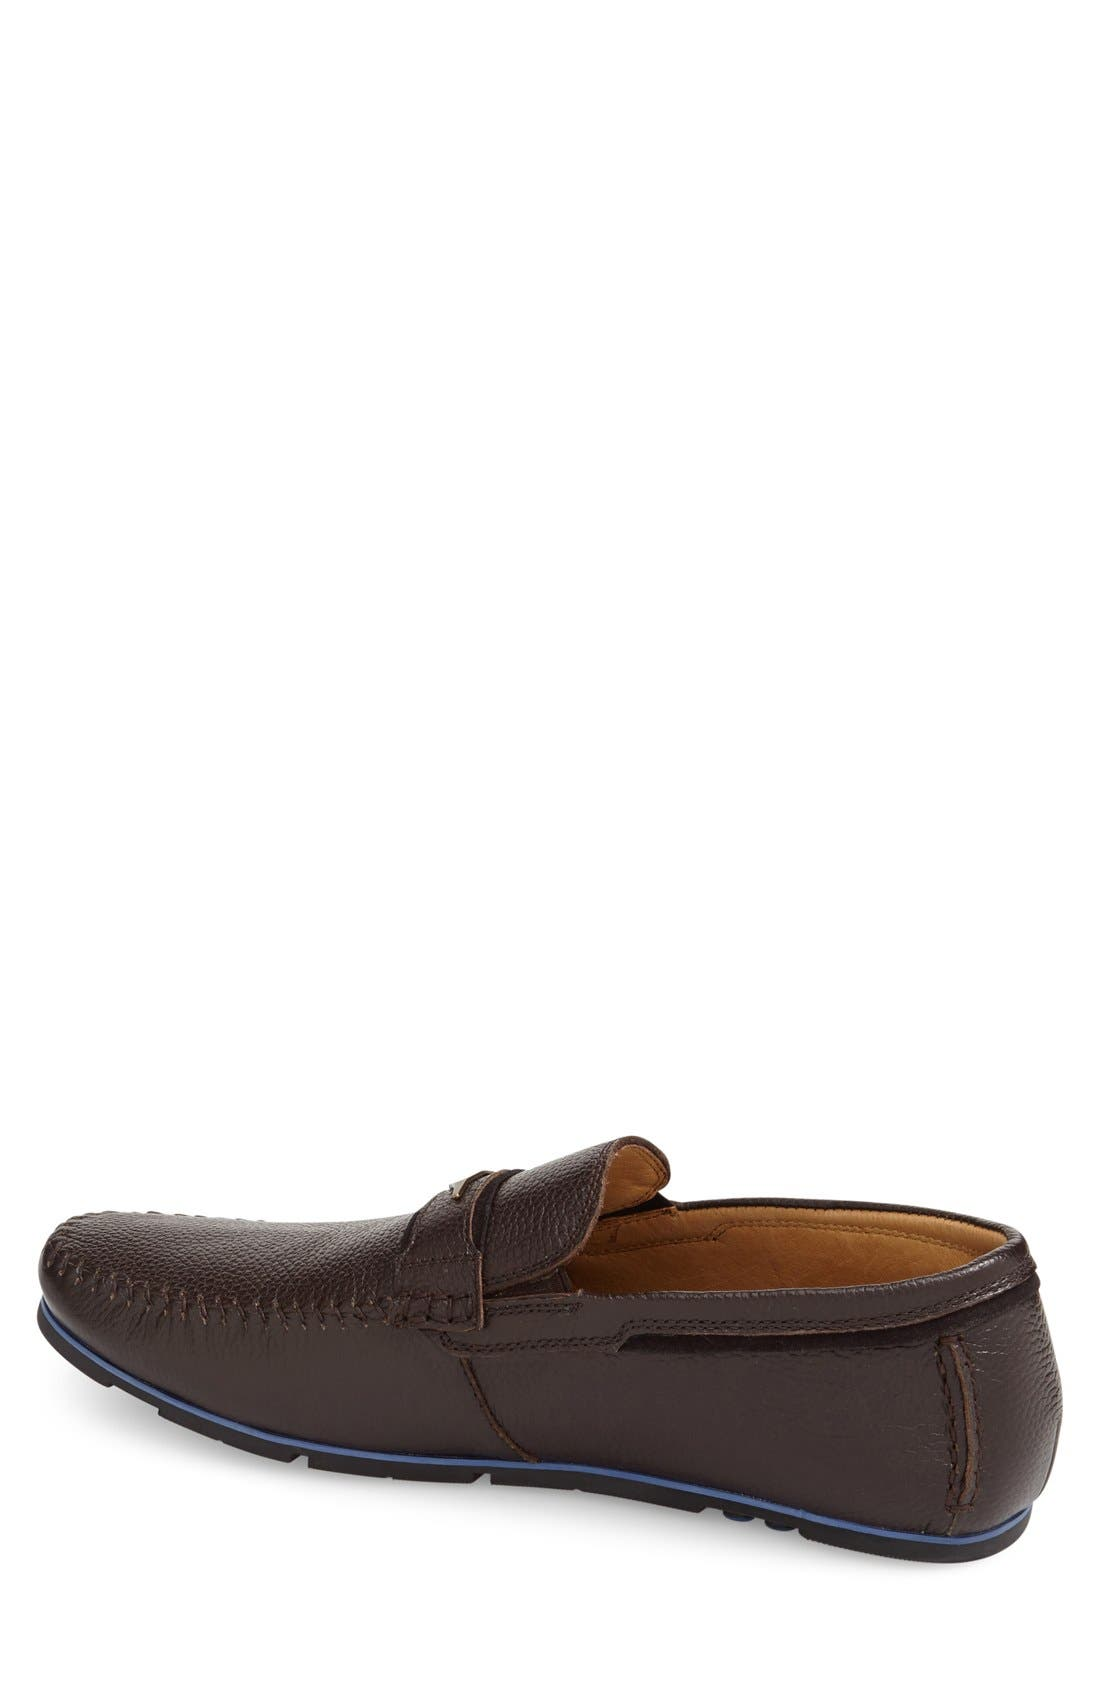 Leather Loafer,                             Alternate thumbnail 4, color,                             Brown Leather